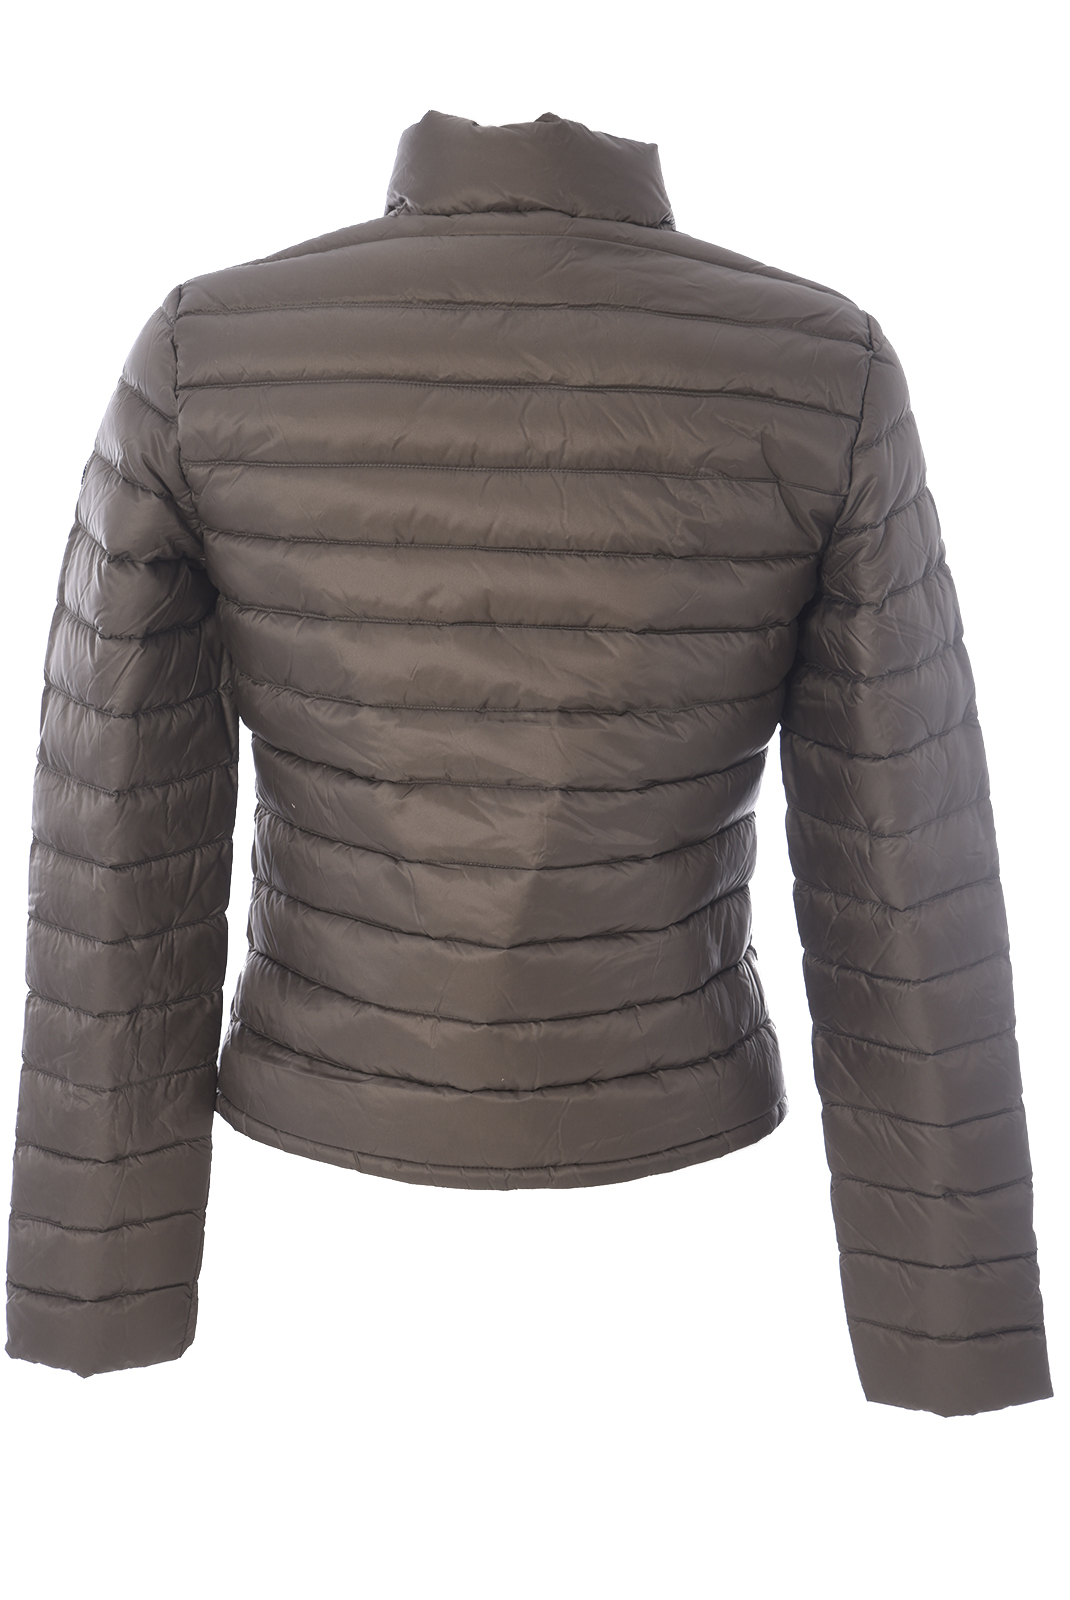 Blouson  Just over the top SONIA 808  TAUPE